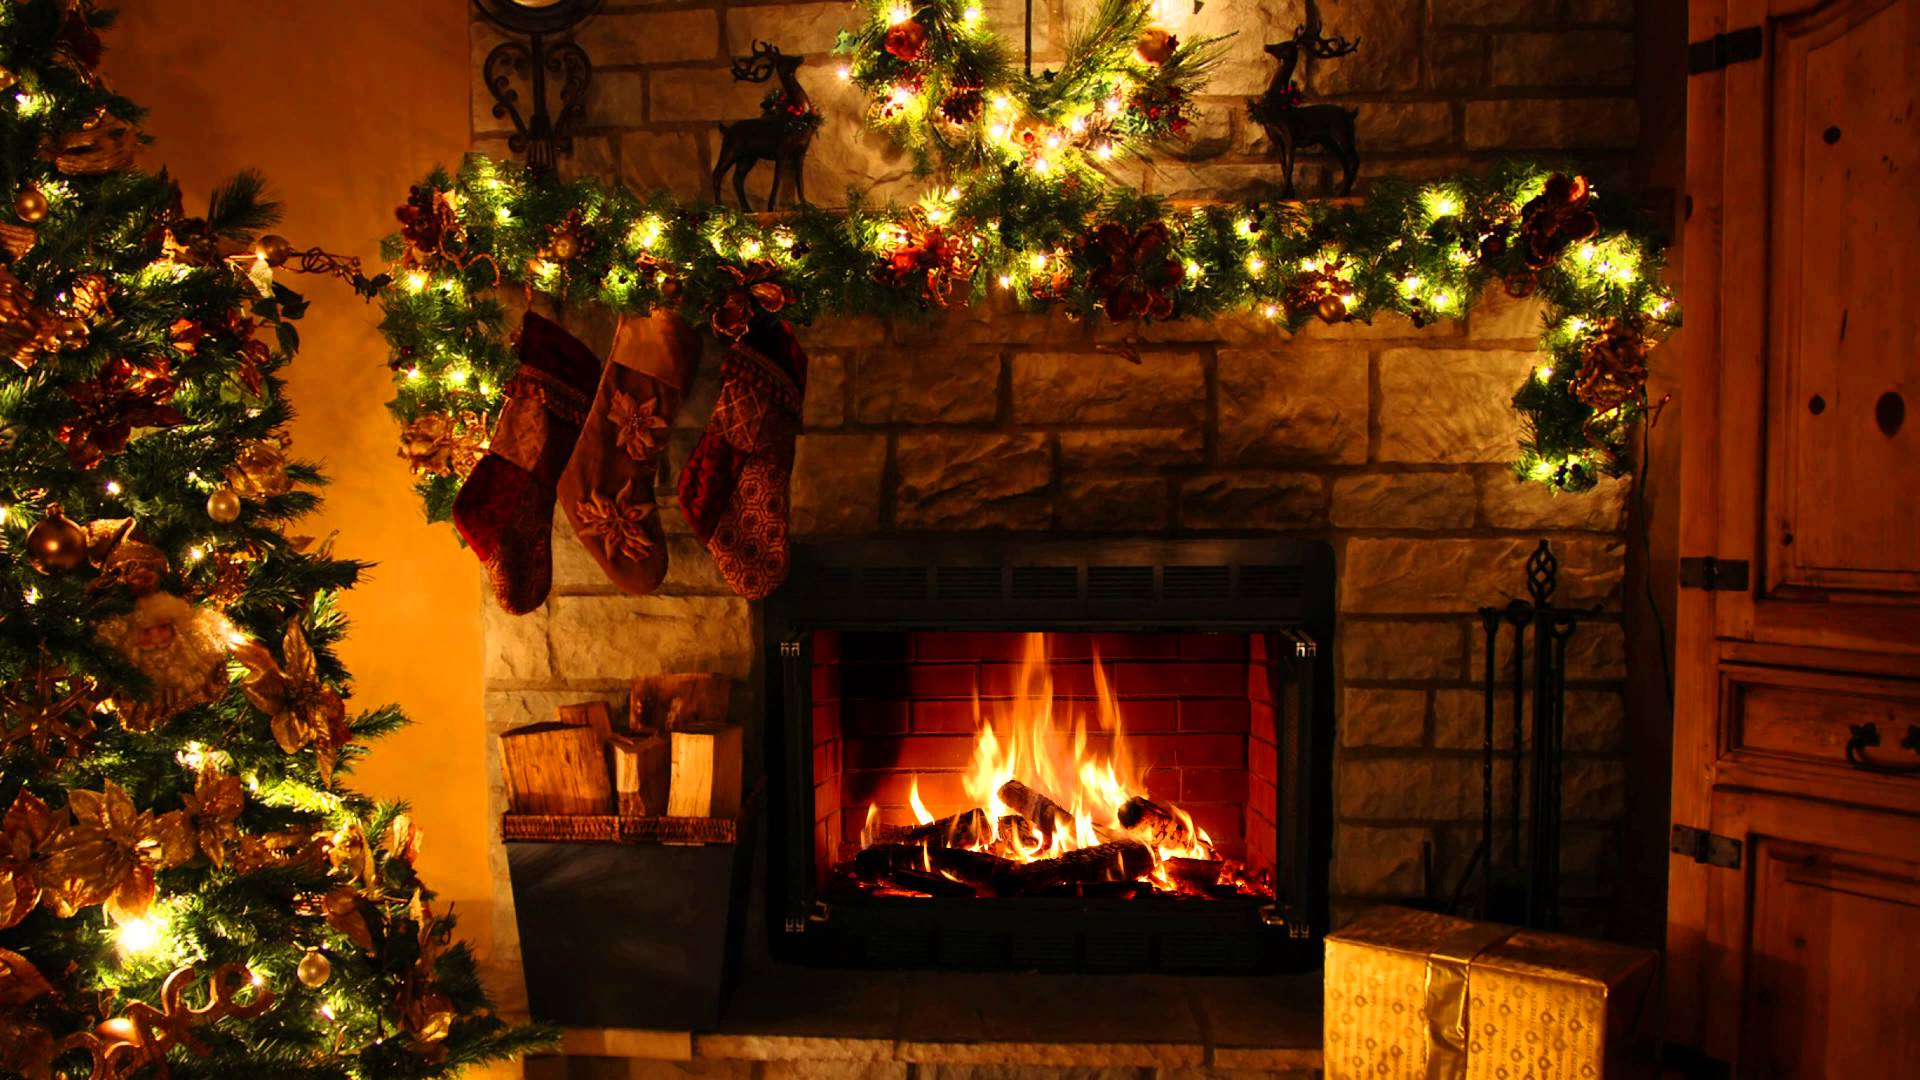 Christmas Fireplace Screensavers Happy Holidays 1920x1080